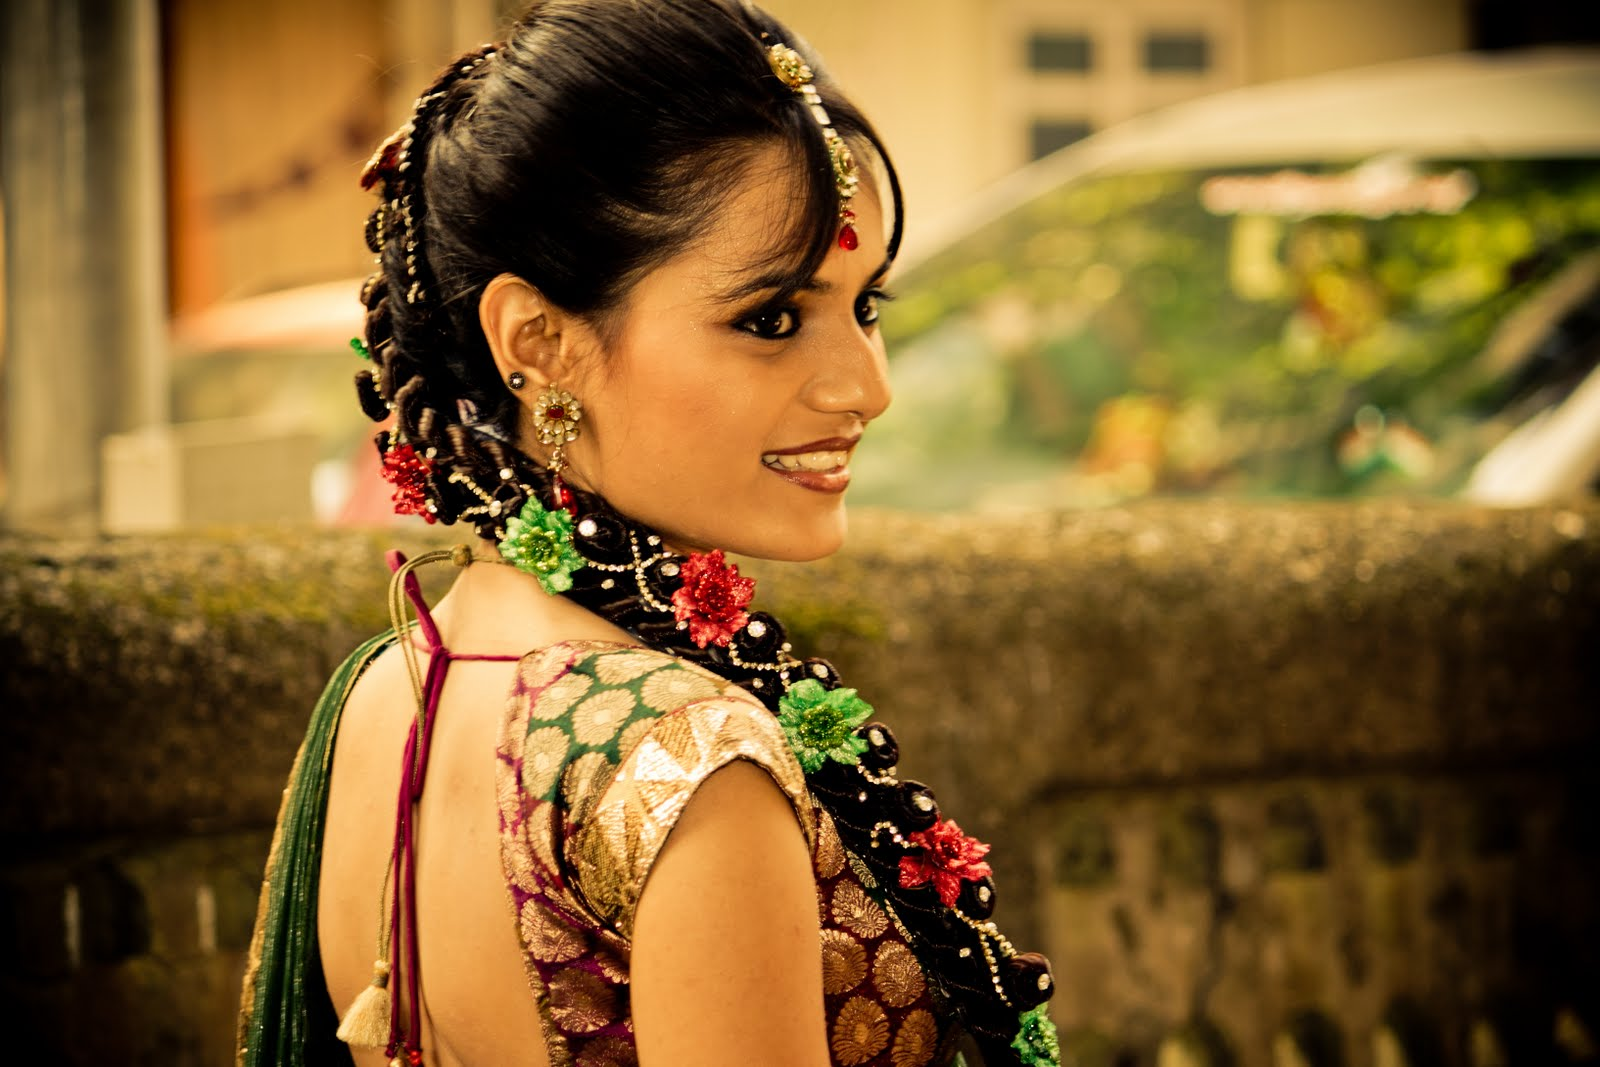 Gujarati People http://hyderabadweddingphotographer.blogspot.com/2010/11/colorful-gujarati-bride.html